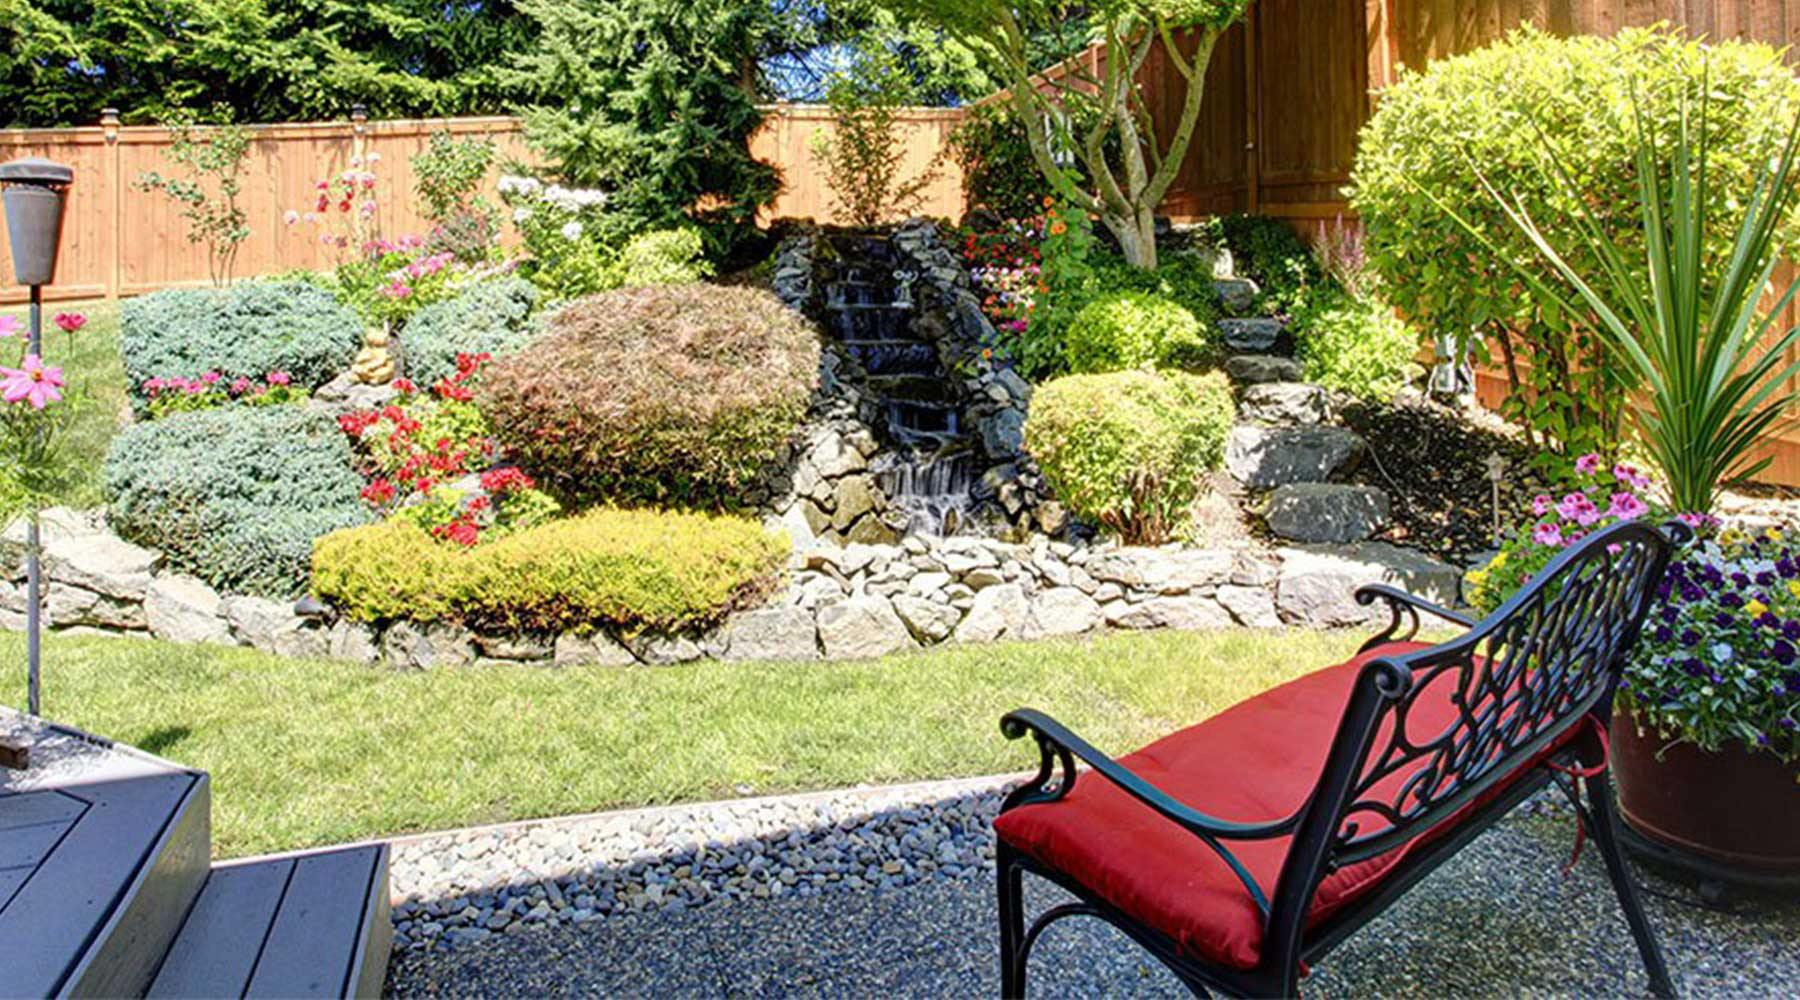 How to Measure Outdoor Chairs, Loveseats, Benches - My Backyard Decor